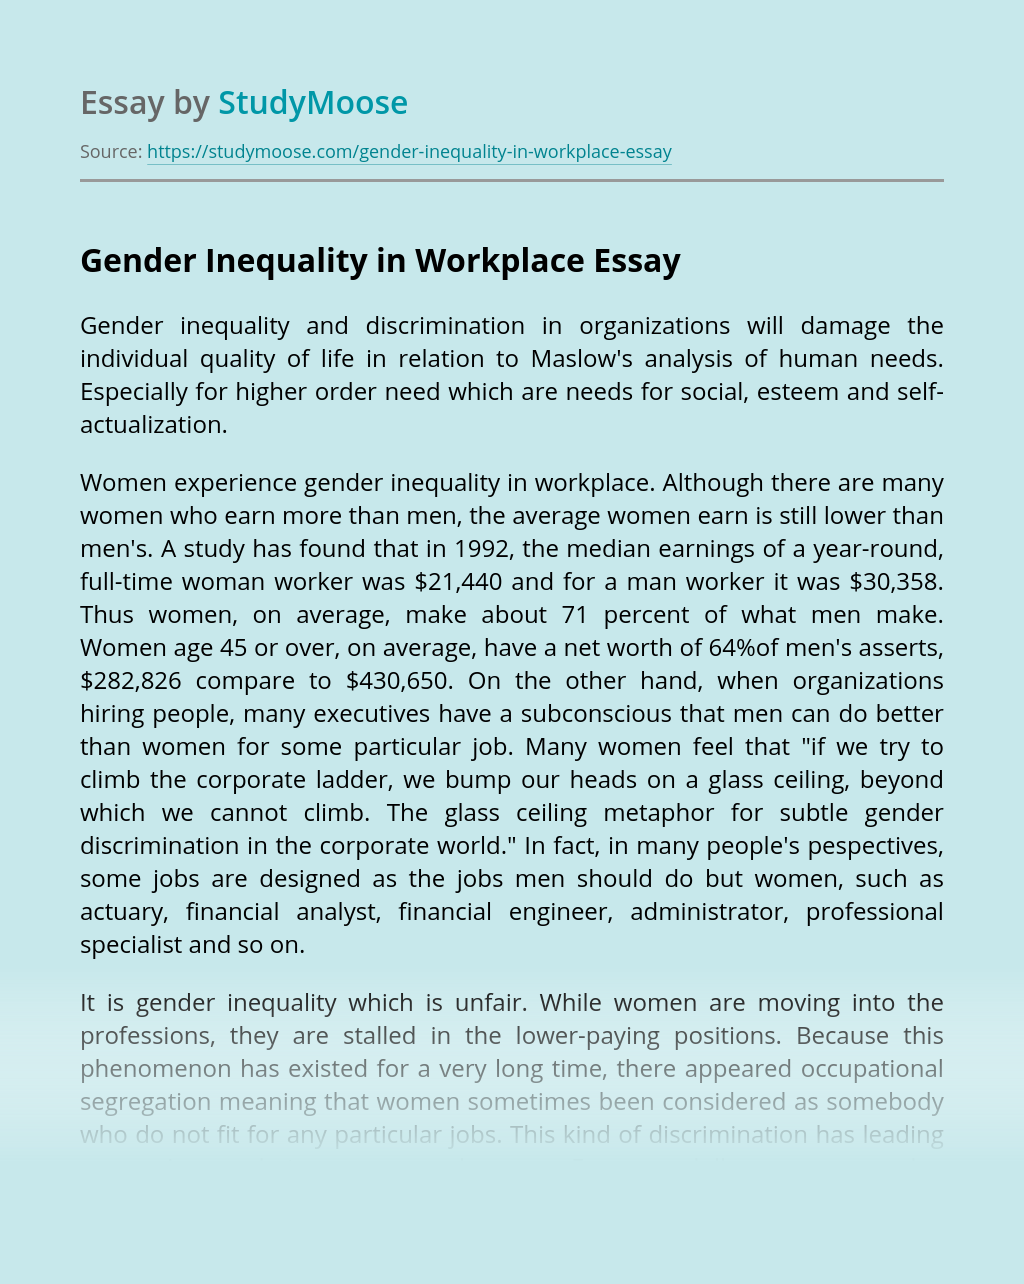 Gender Inequality in Workplace